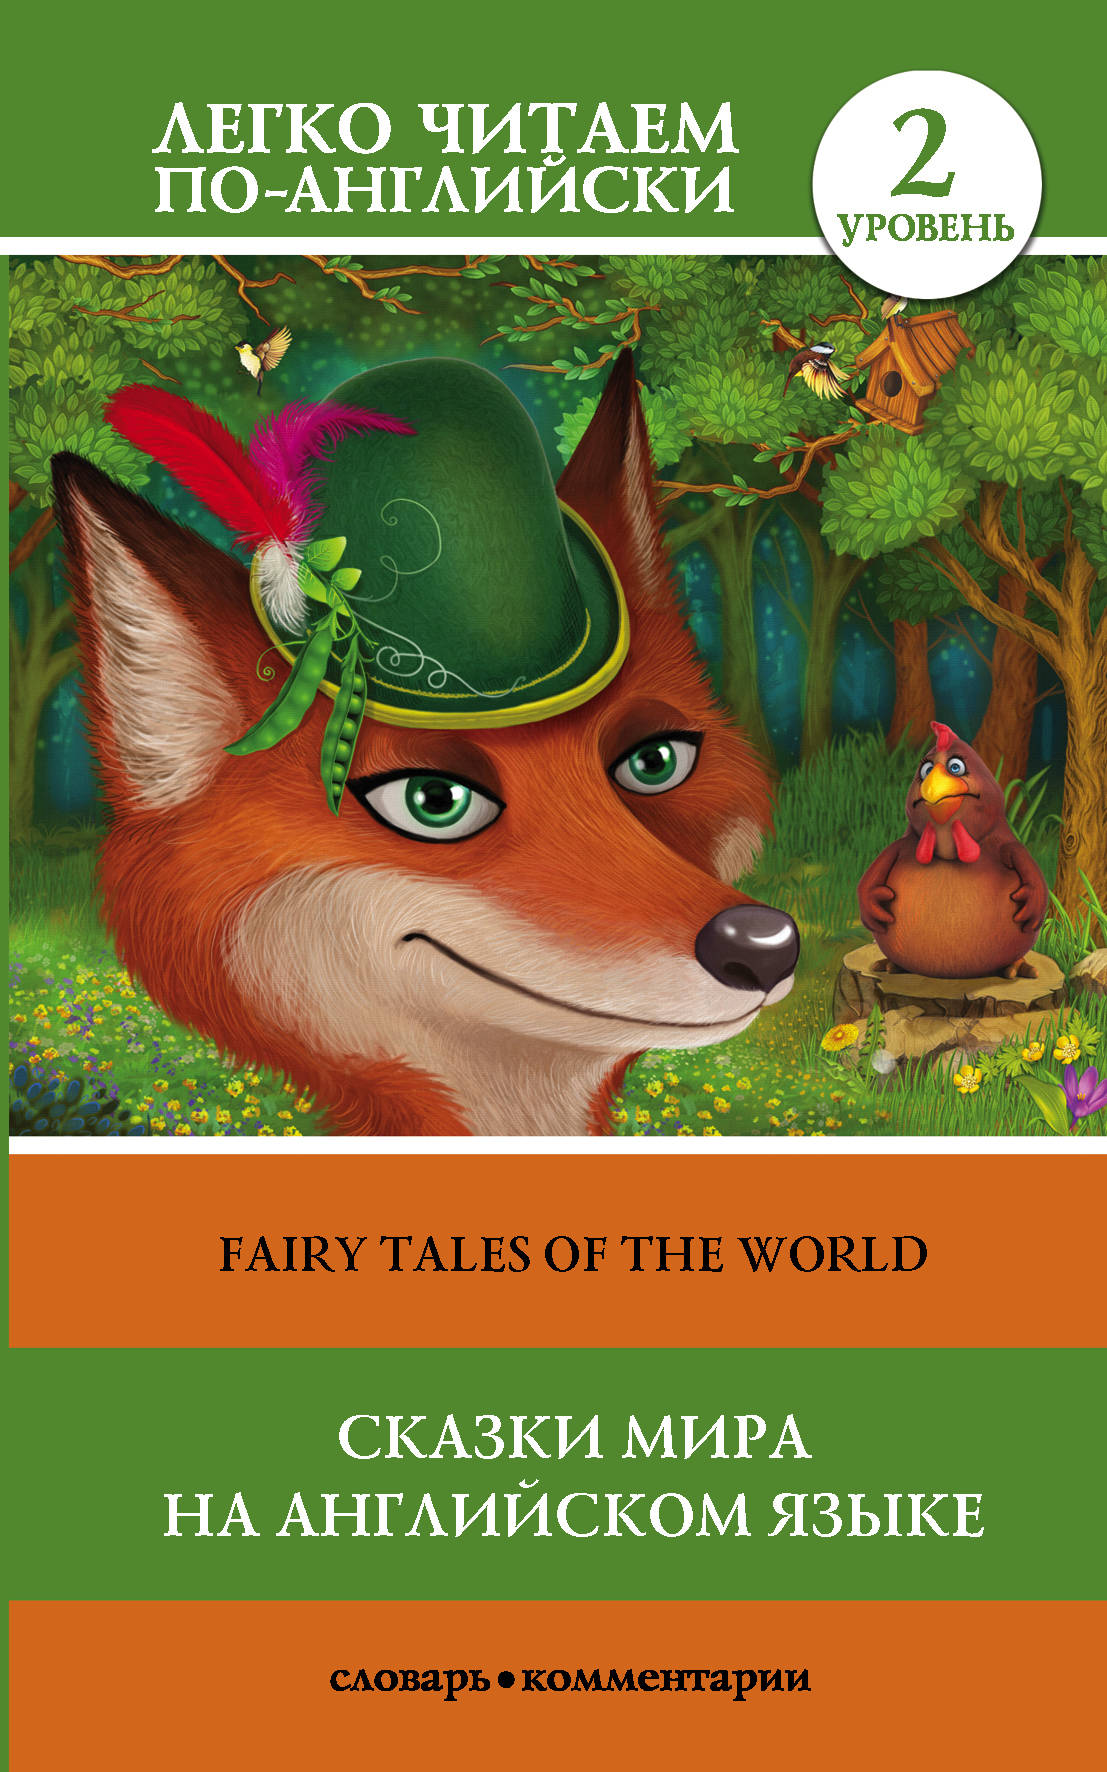 Fairy Tales of the World / Сказки мира на английском языке. Уровень 2 читаем на английском часть 2 сказки